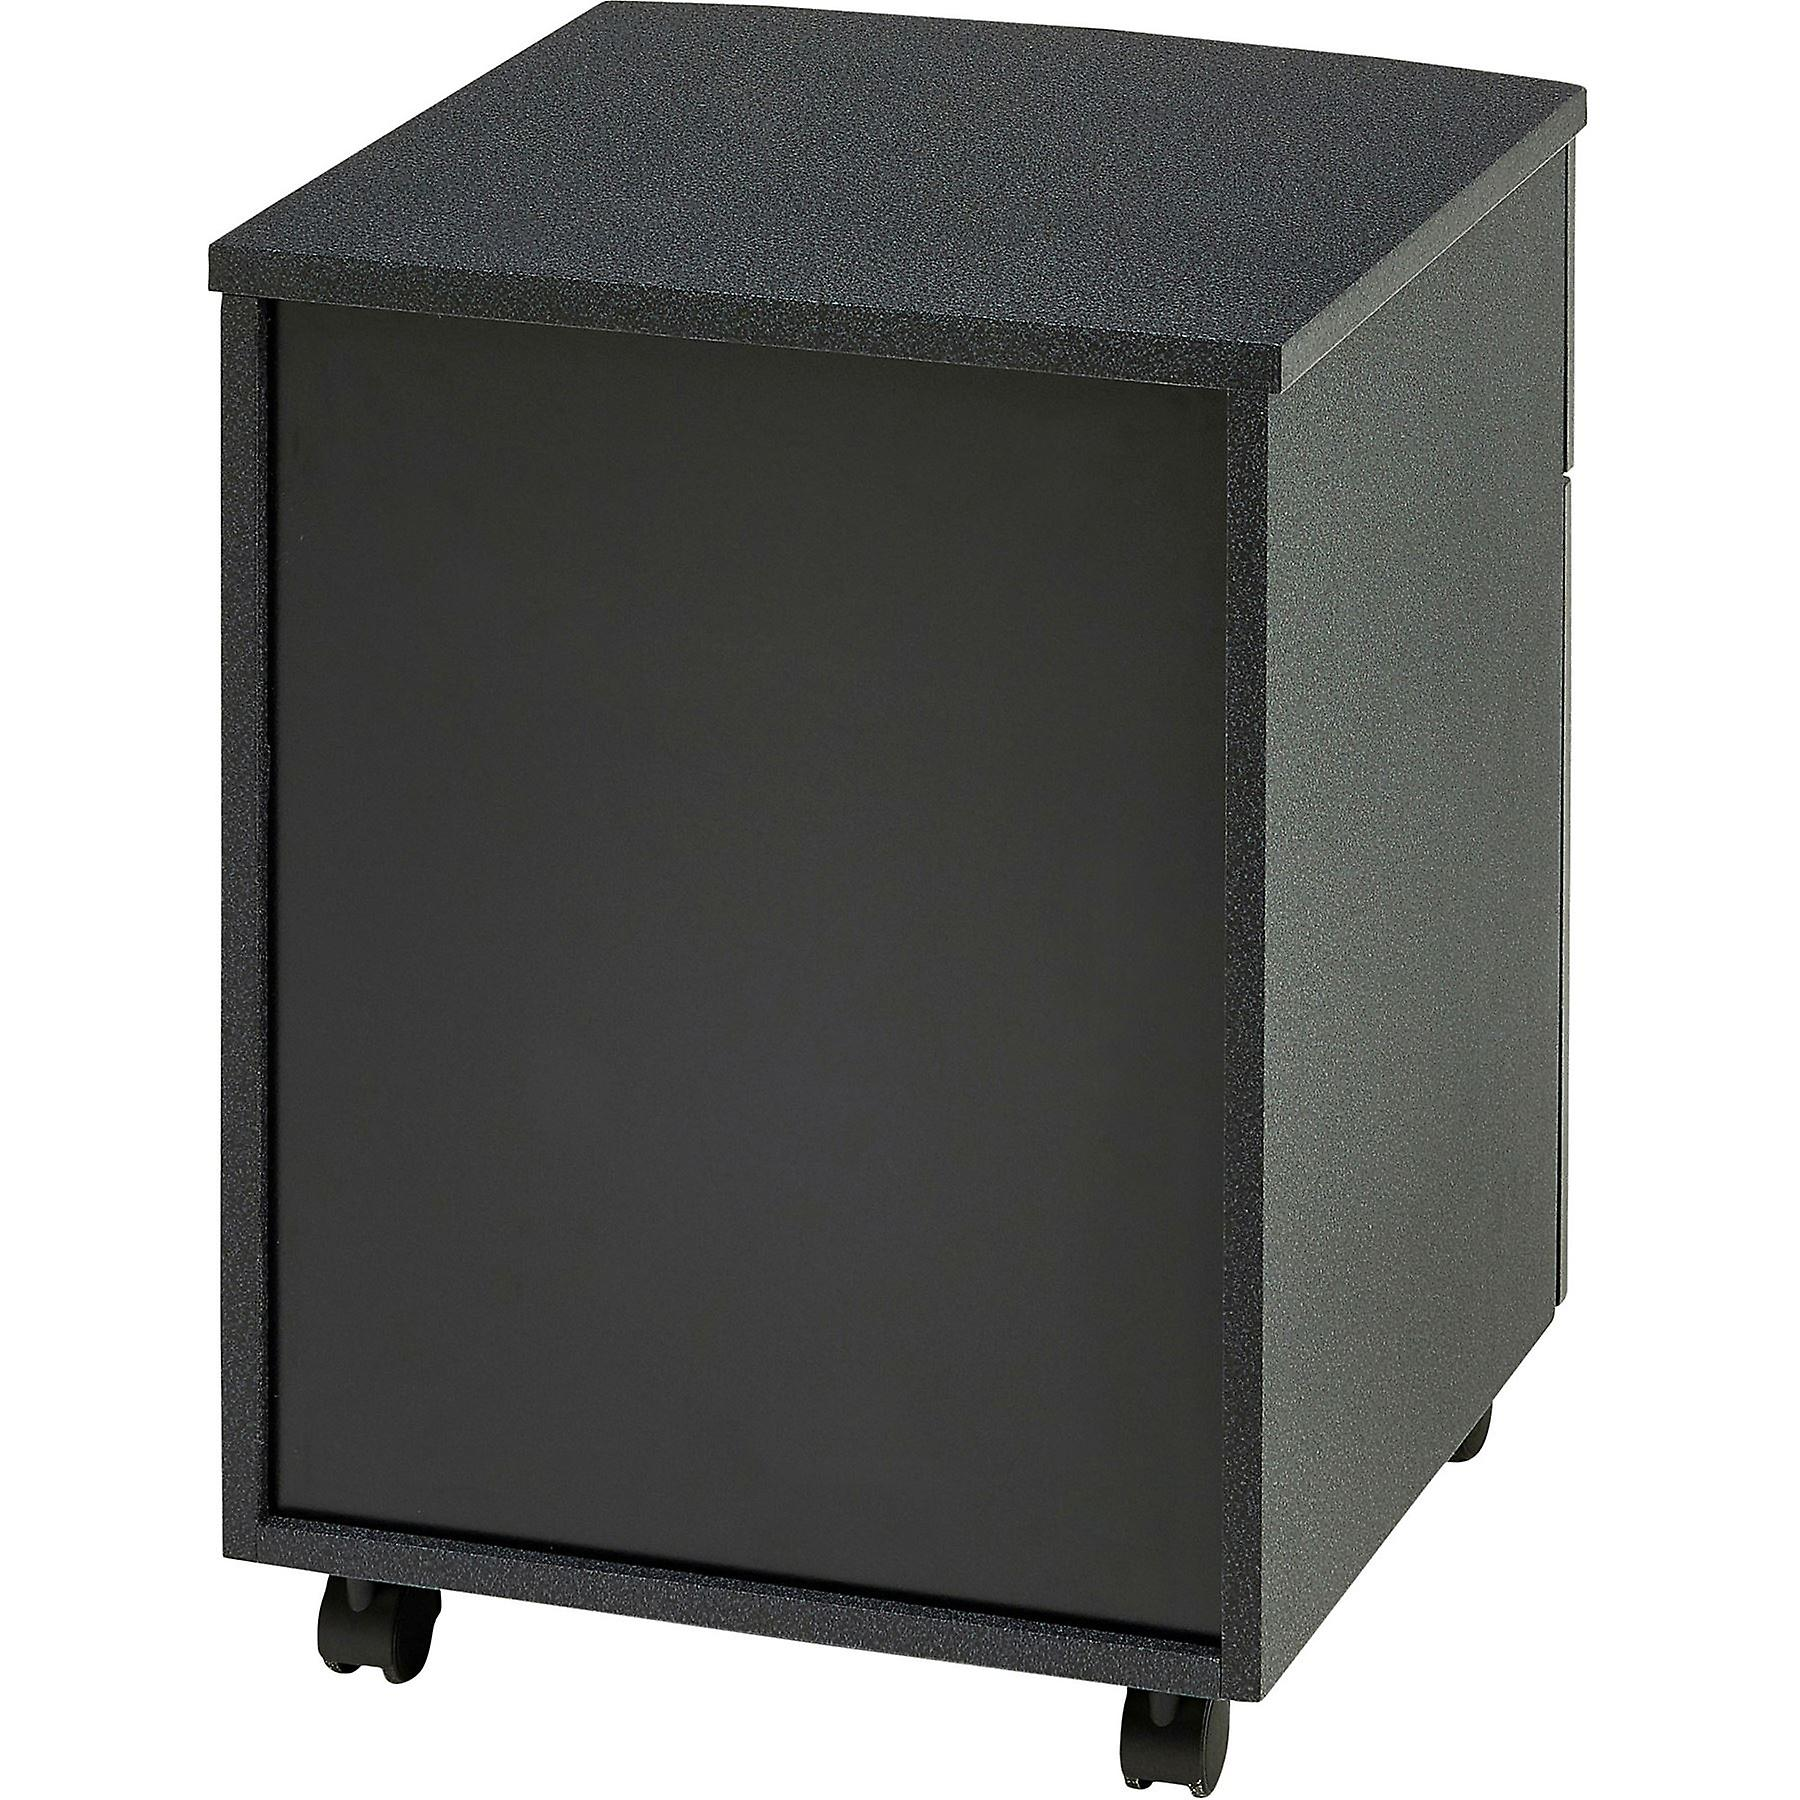 Blenny kabinet Graphite Black PC10g